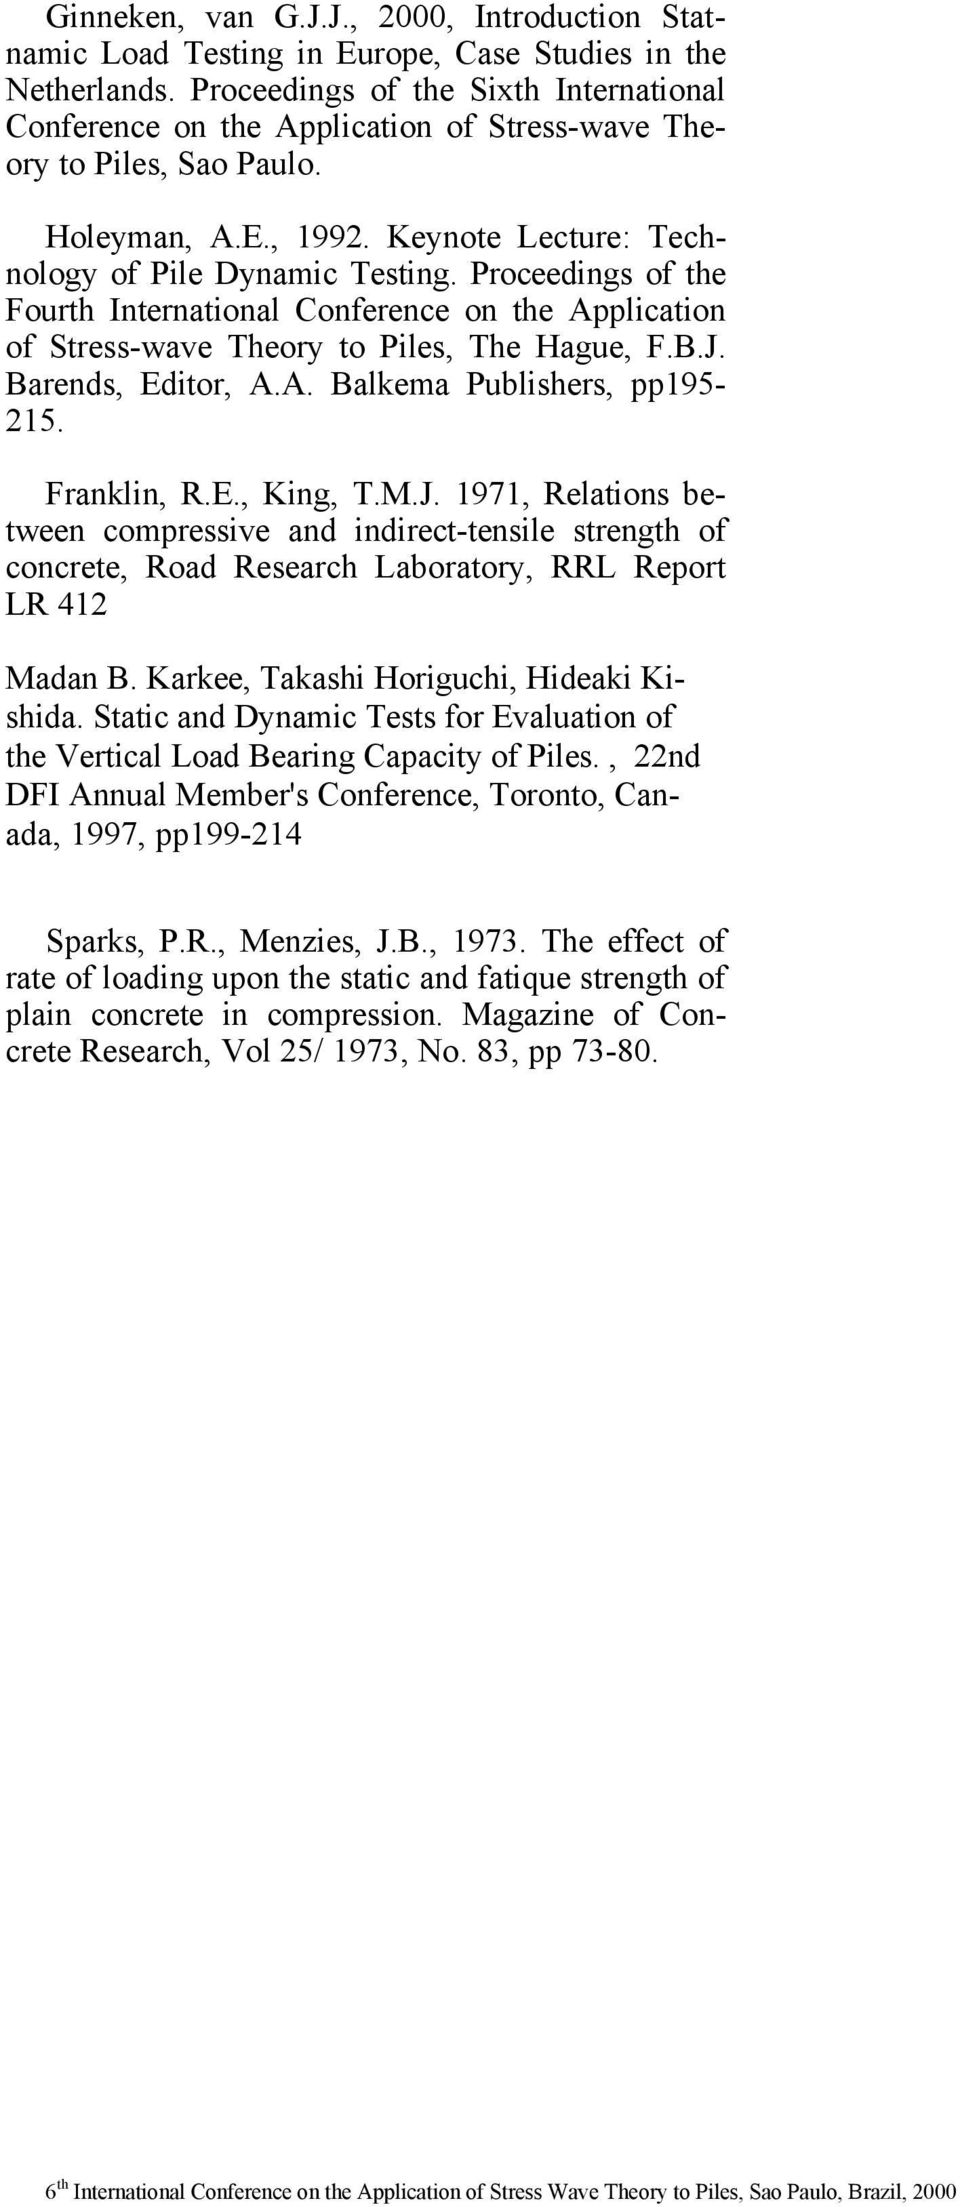 Proceedings of the Fourth International Conference on the Application of Stress-wave Theory to Piles, The Hague, F.B.J. Barends, Editor, A.A. Balkema Publishers, pp195-215. Franklin, R.E., King, T.M.